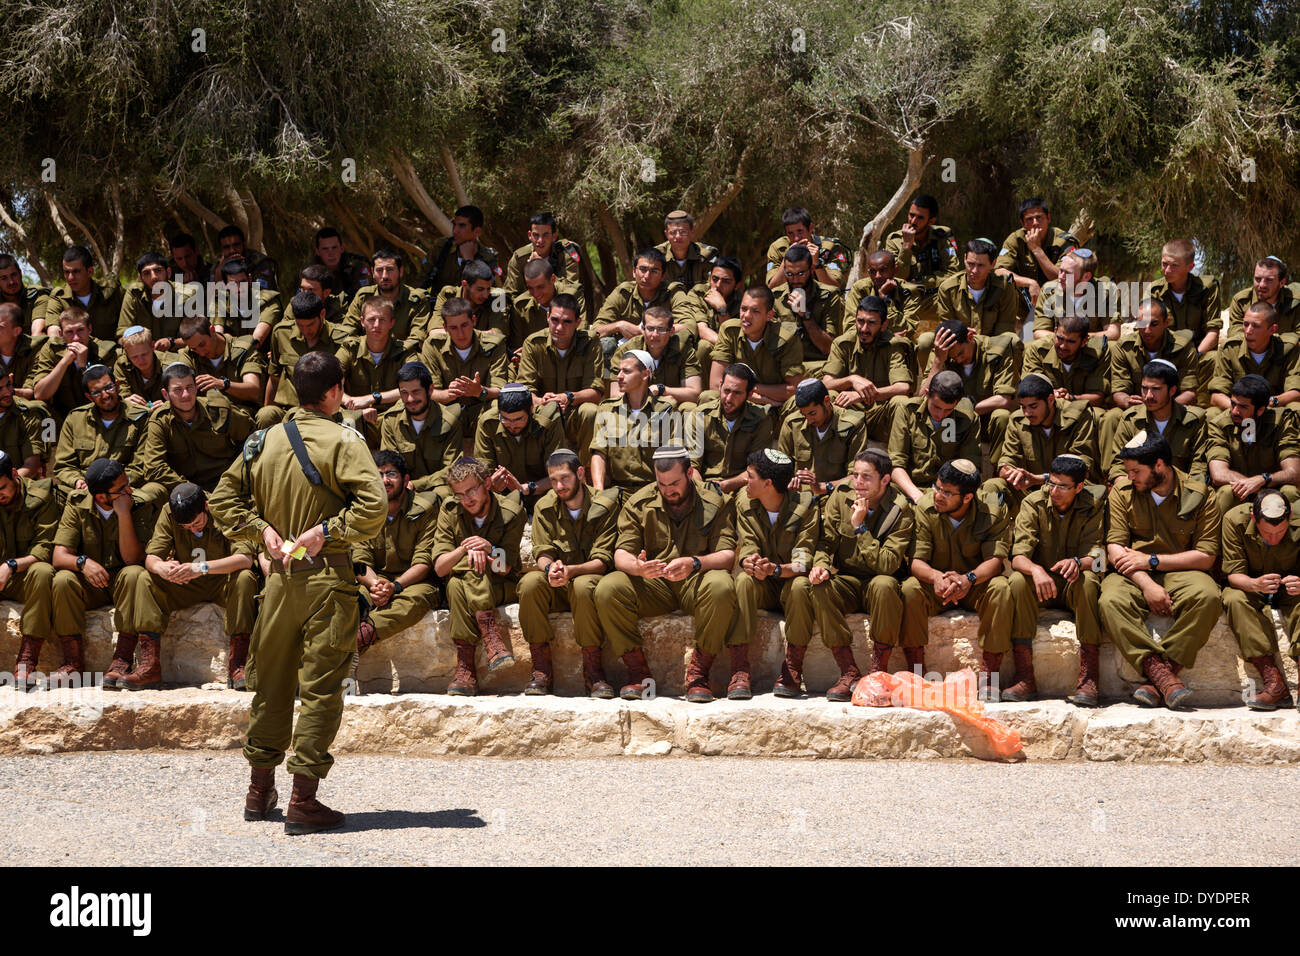 Soldiers by the grave site of David Ben Gurion in Sde Boker, Negev region, Israel. - Stock Image